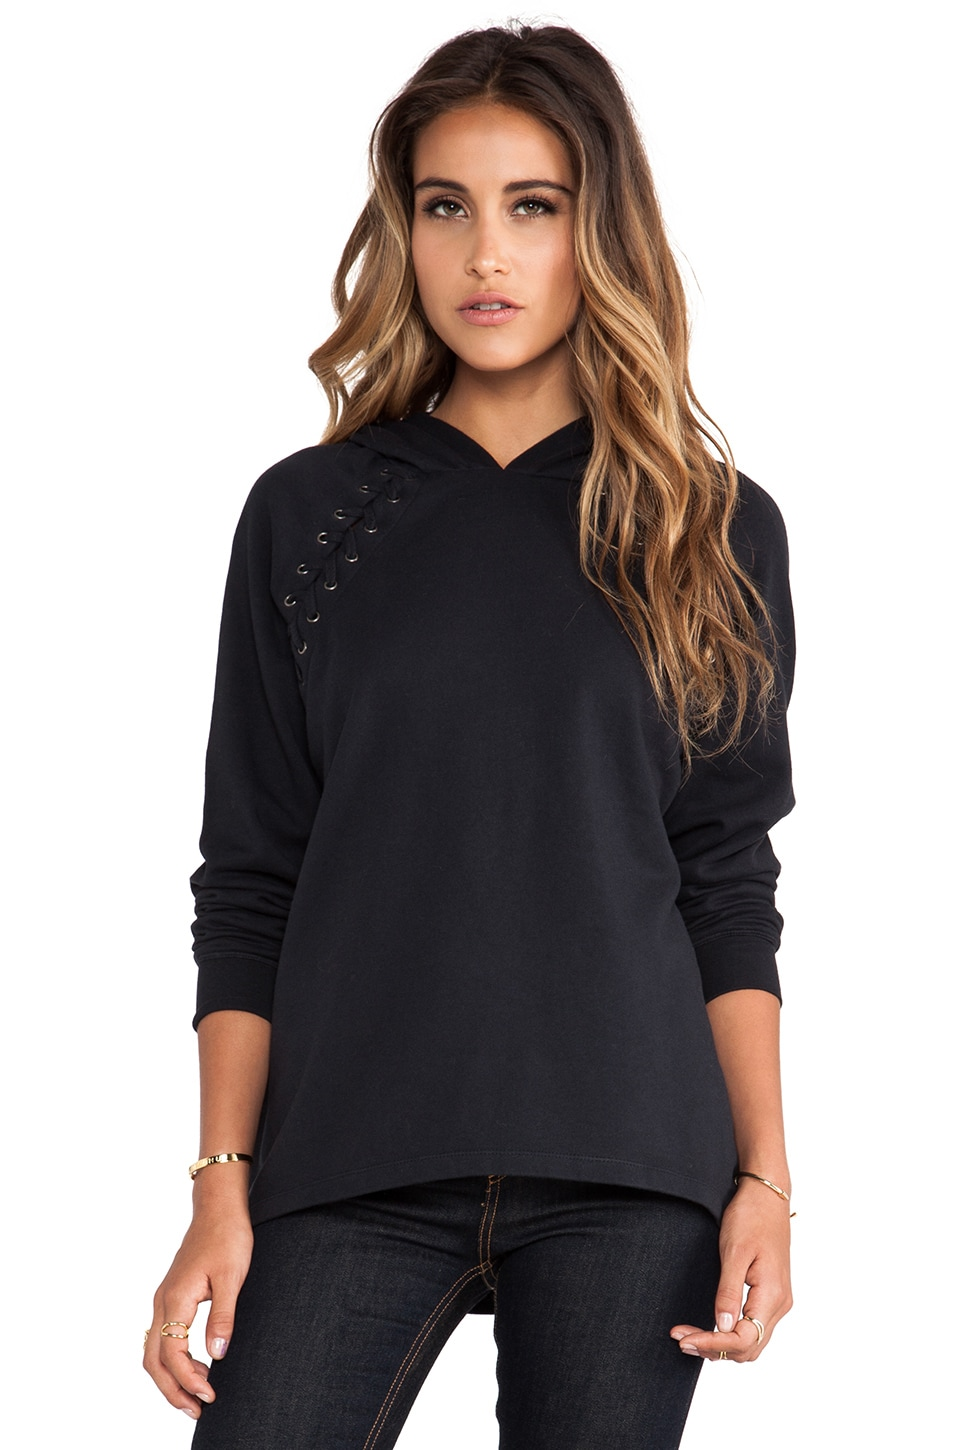 RVCA Soulfire Sweatshirt in Black